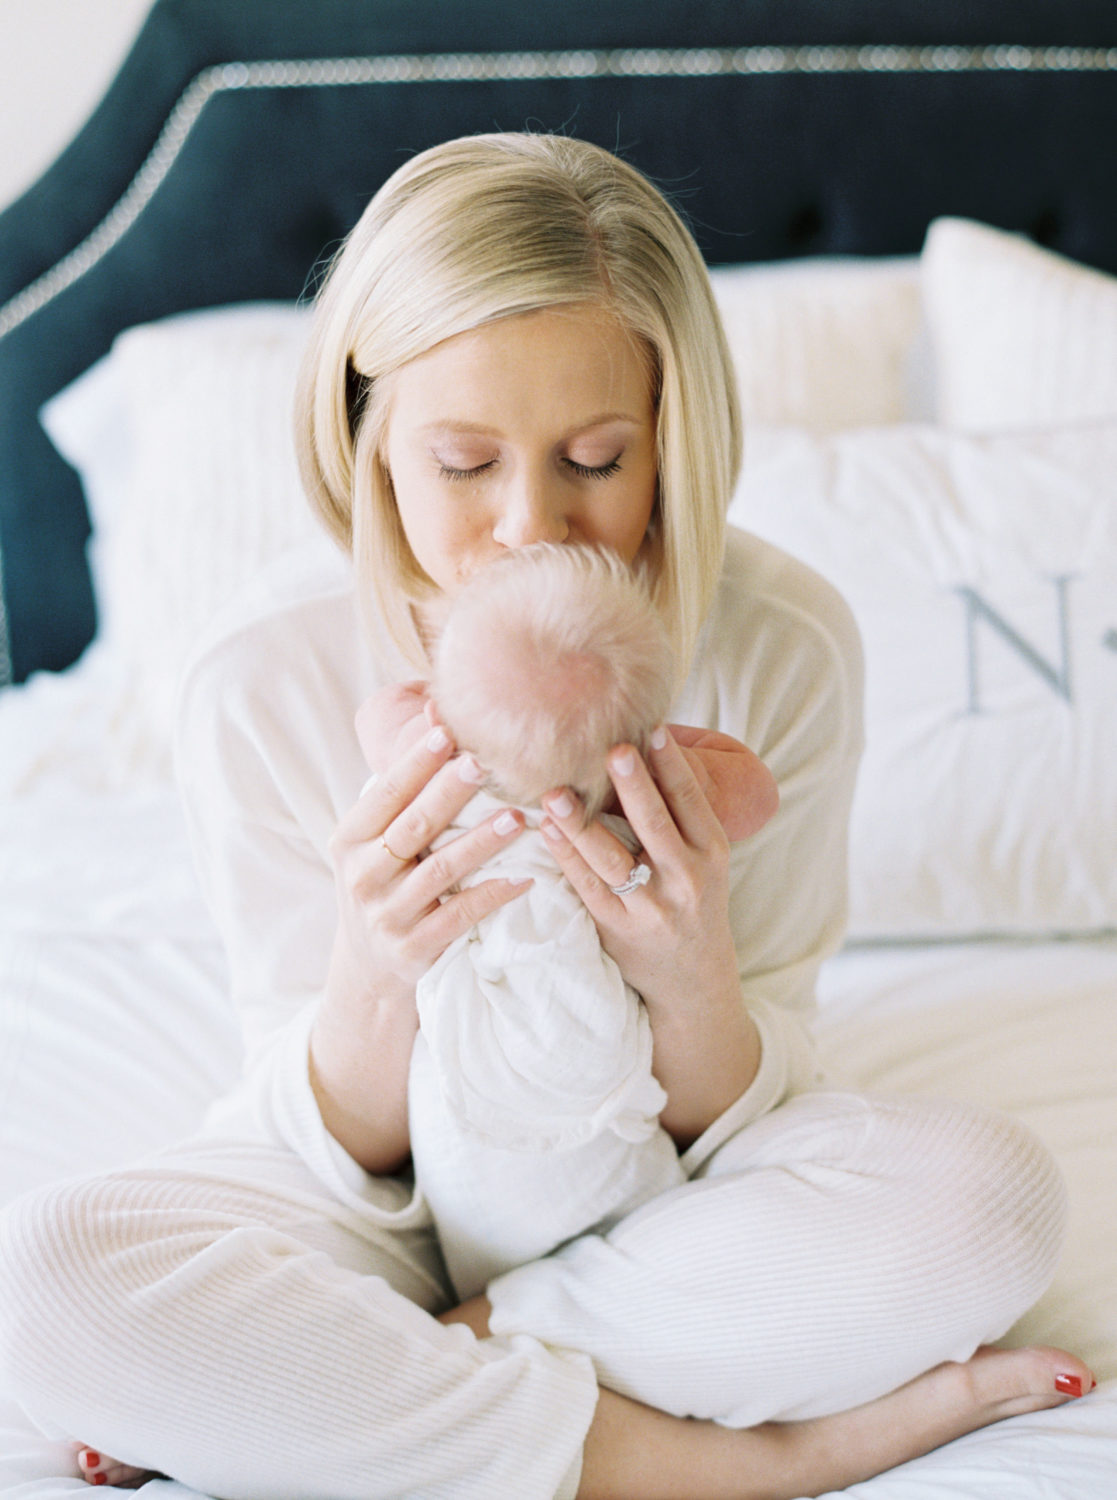 newborn session inspiration